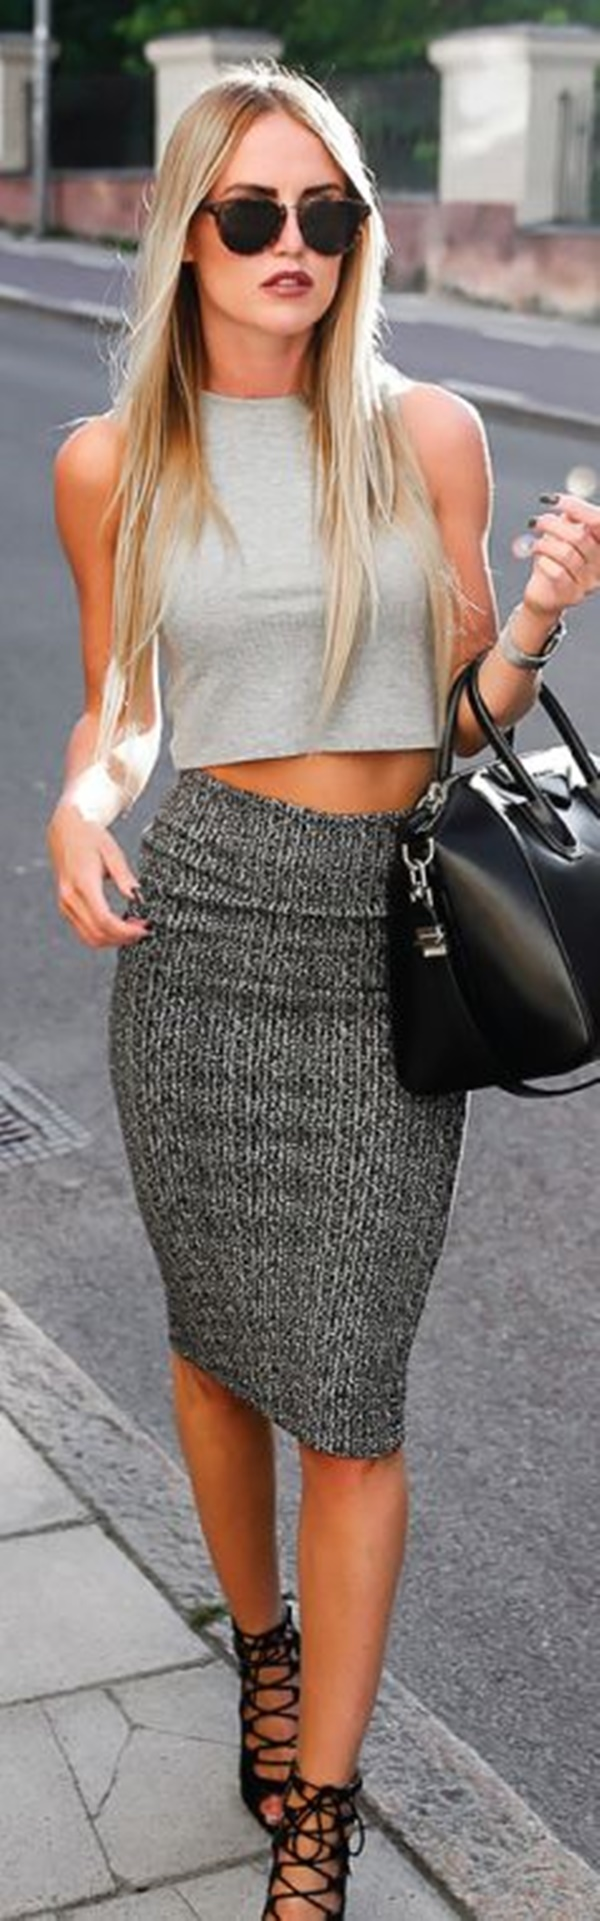 street style fashion ideas (18)